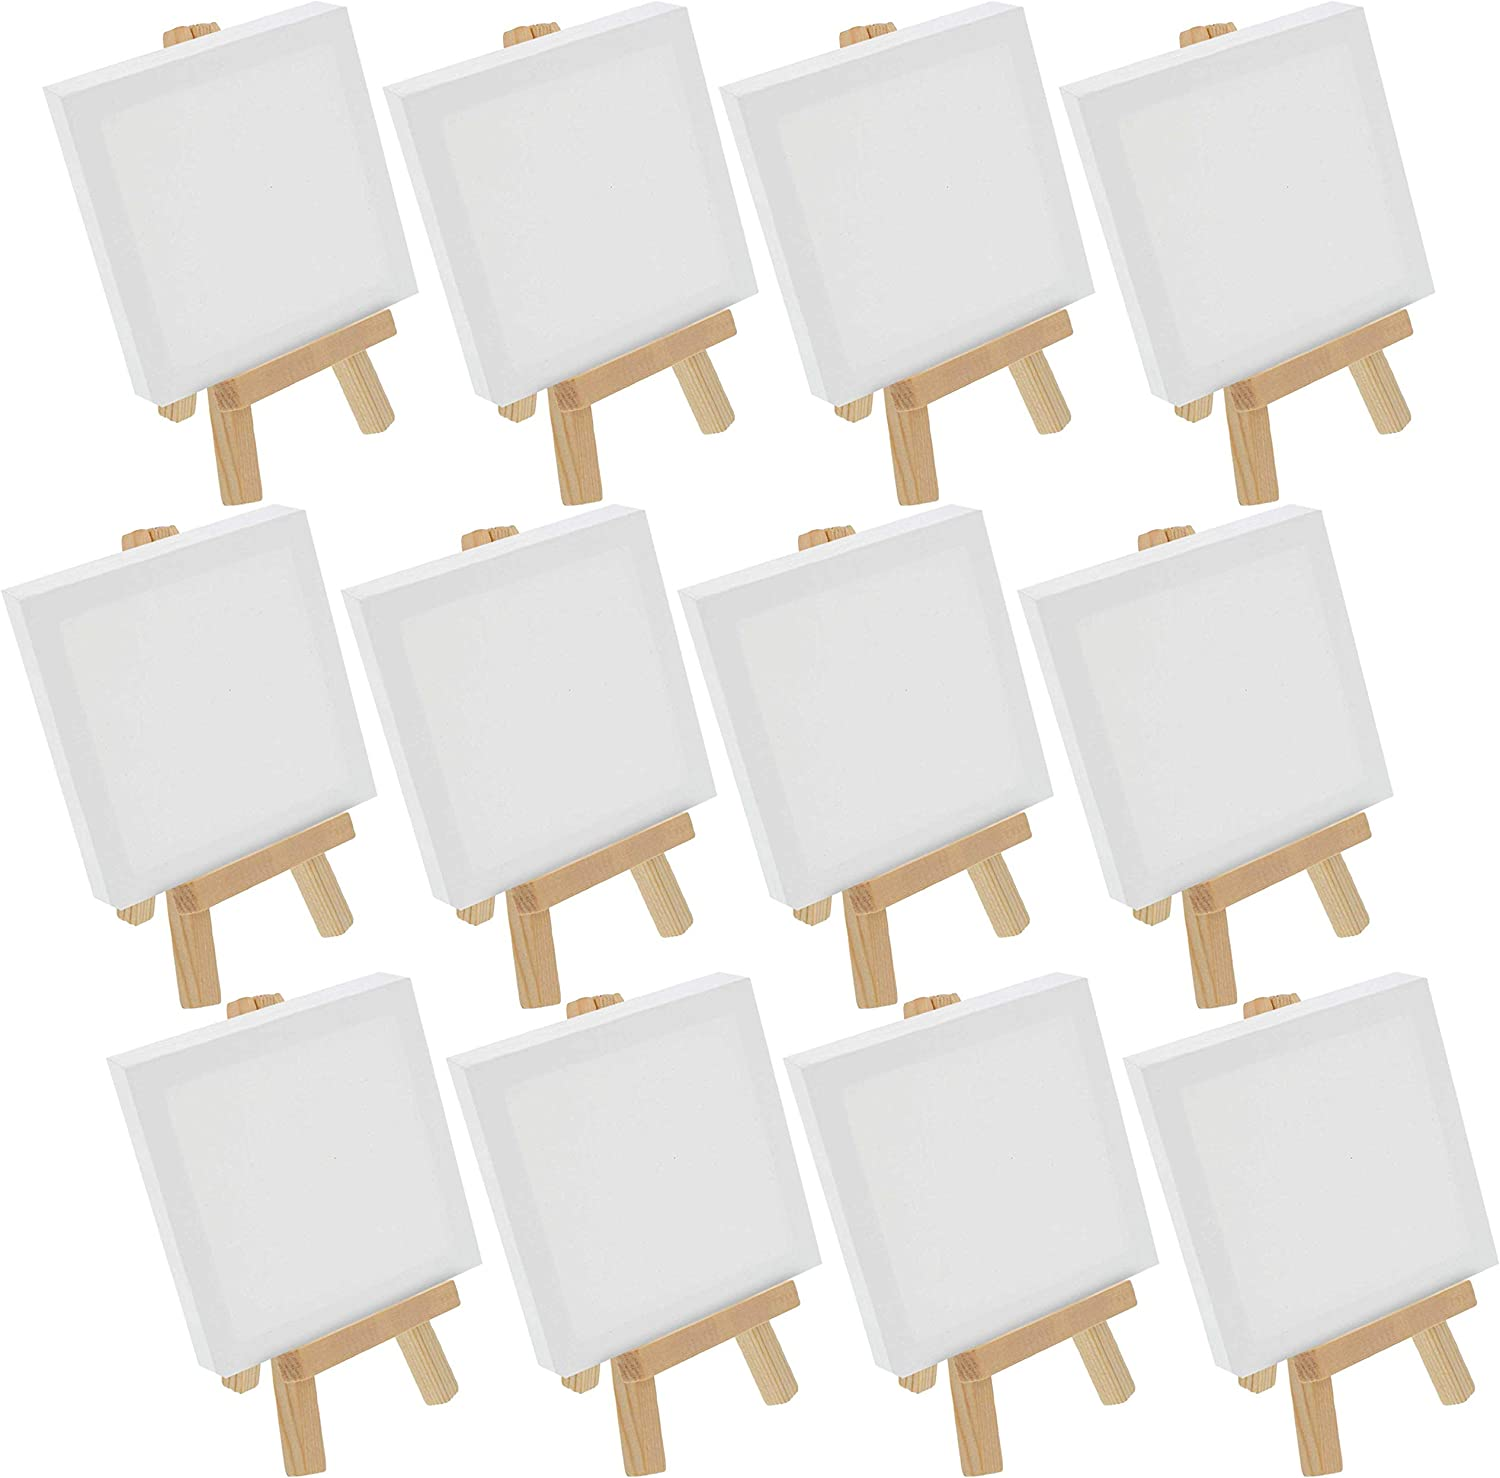 Mini Canvas and Mini Easel Kit 3 in Set of 12 x 3 in